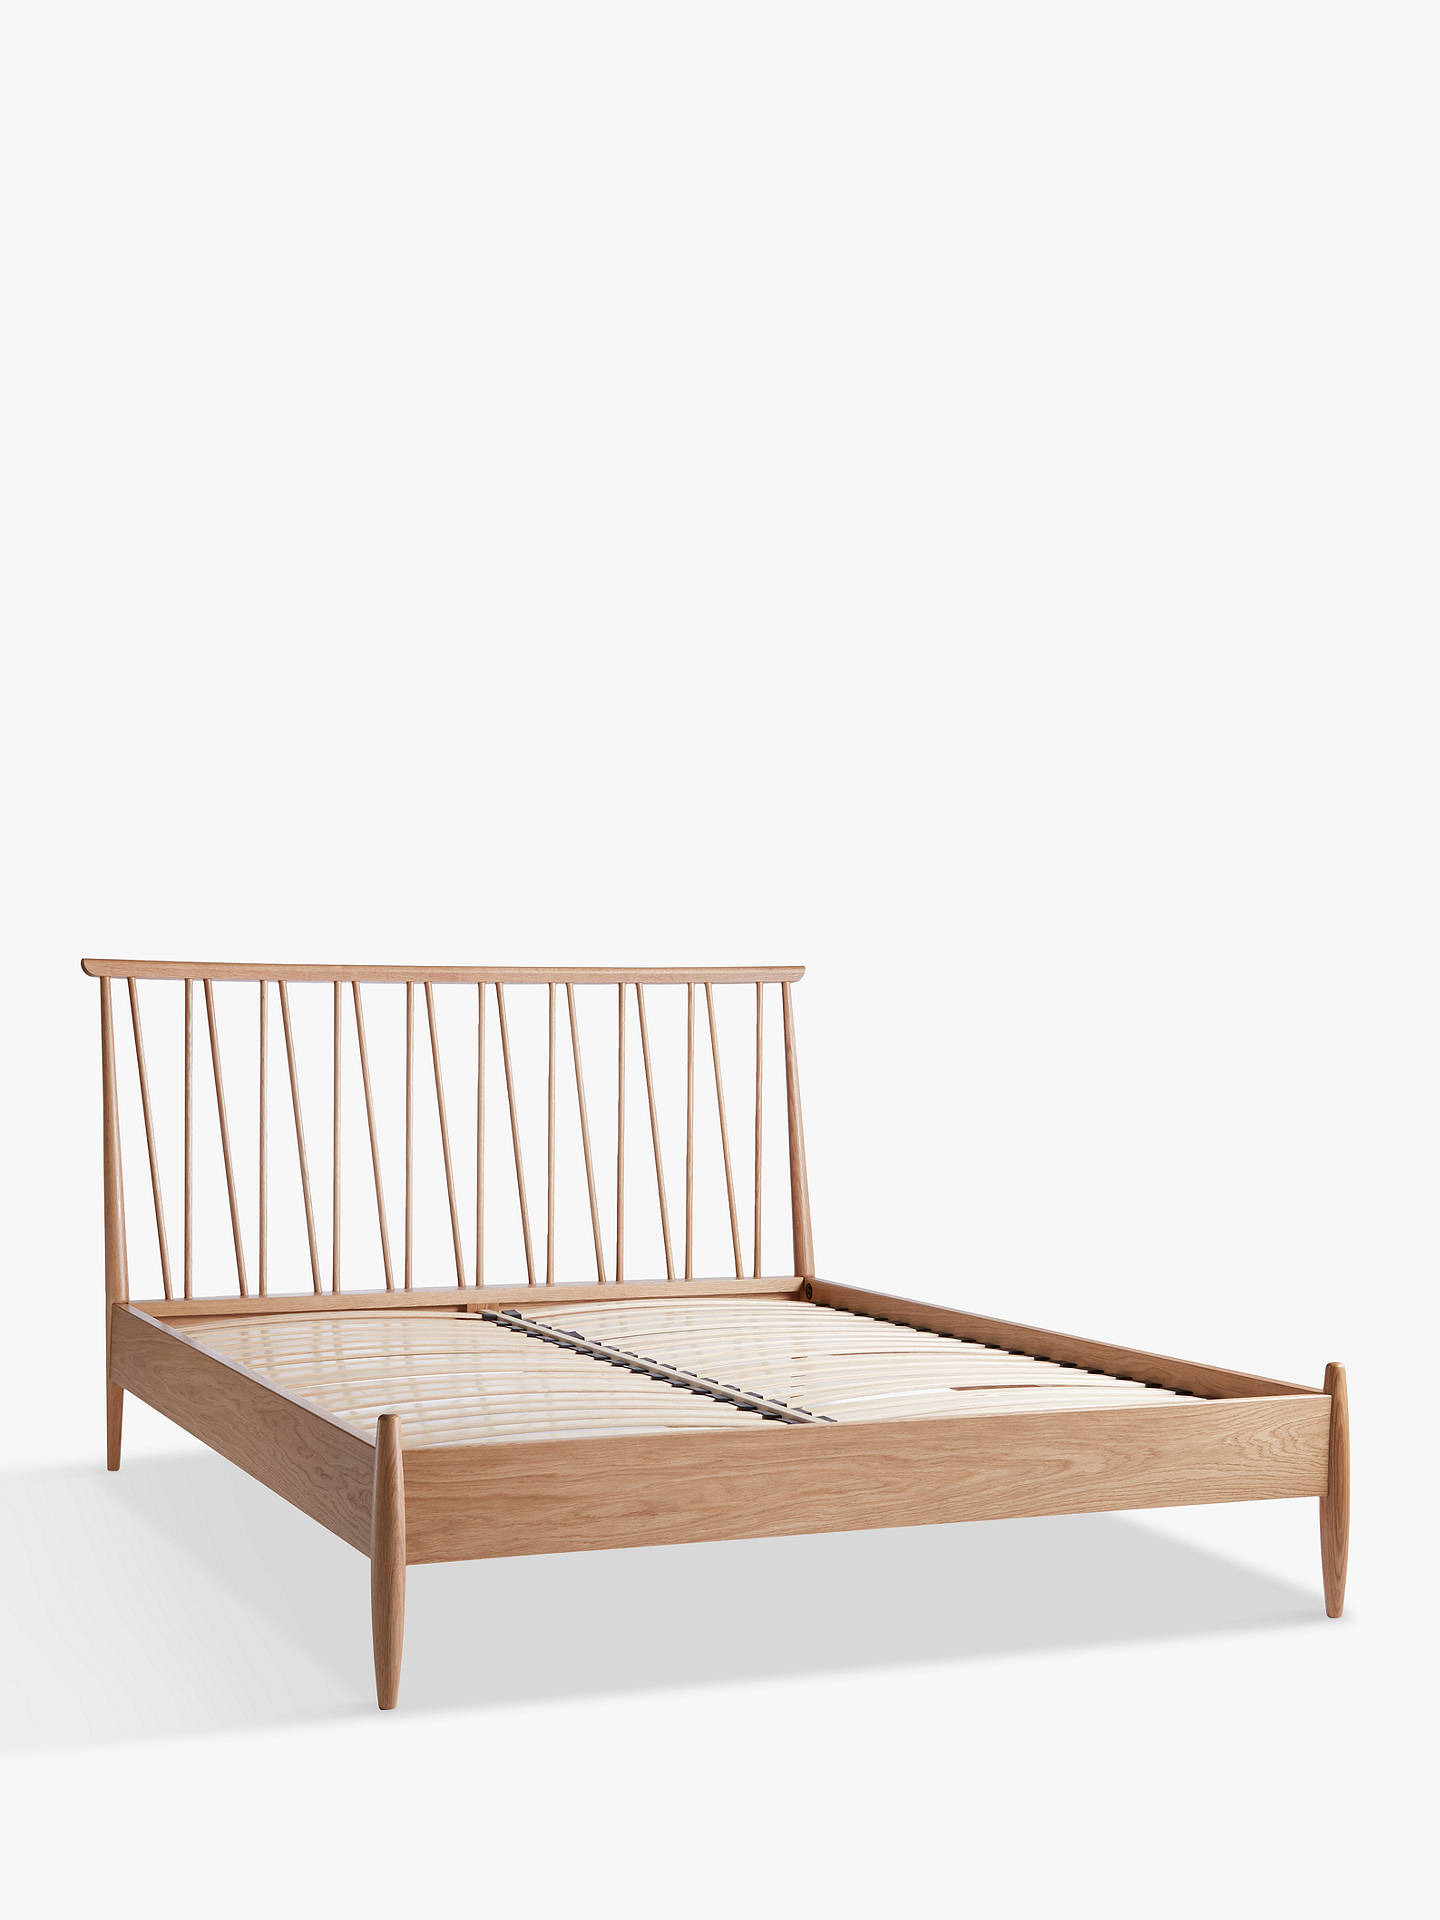 Buy ercol for John Lewis Shalstone Bed Frame, Oak, Double Online at johnlewis.com